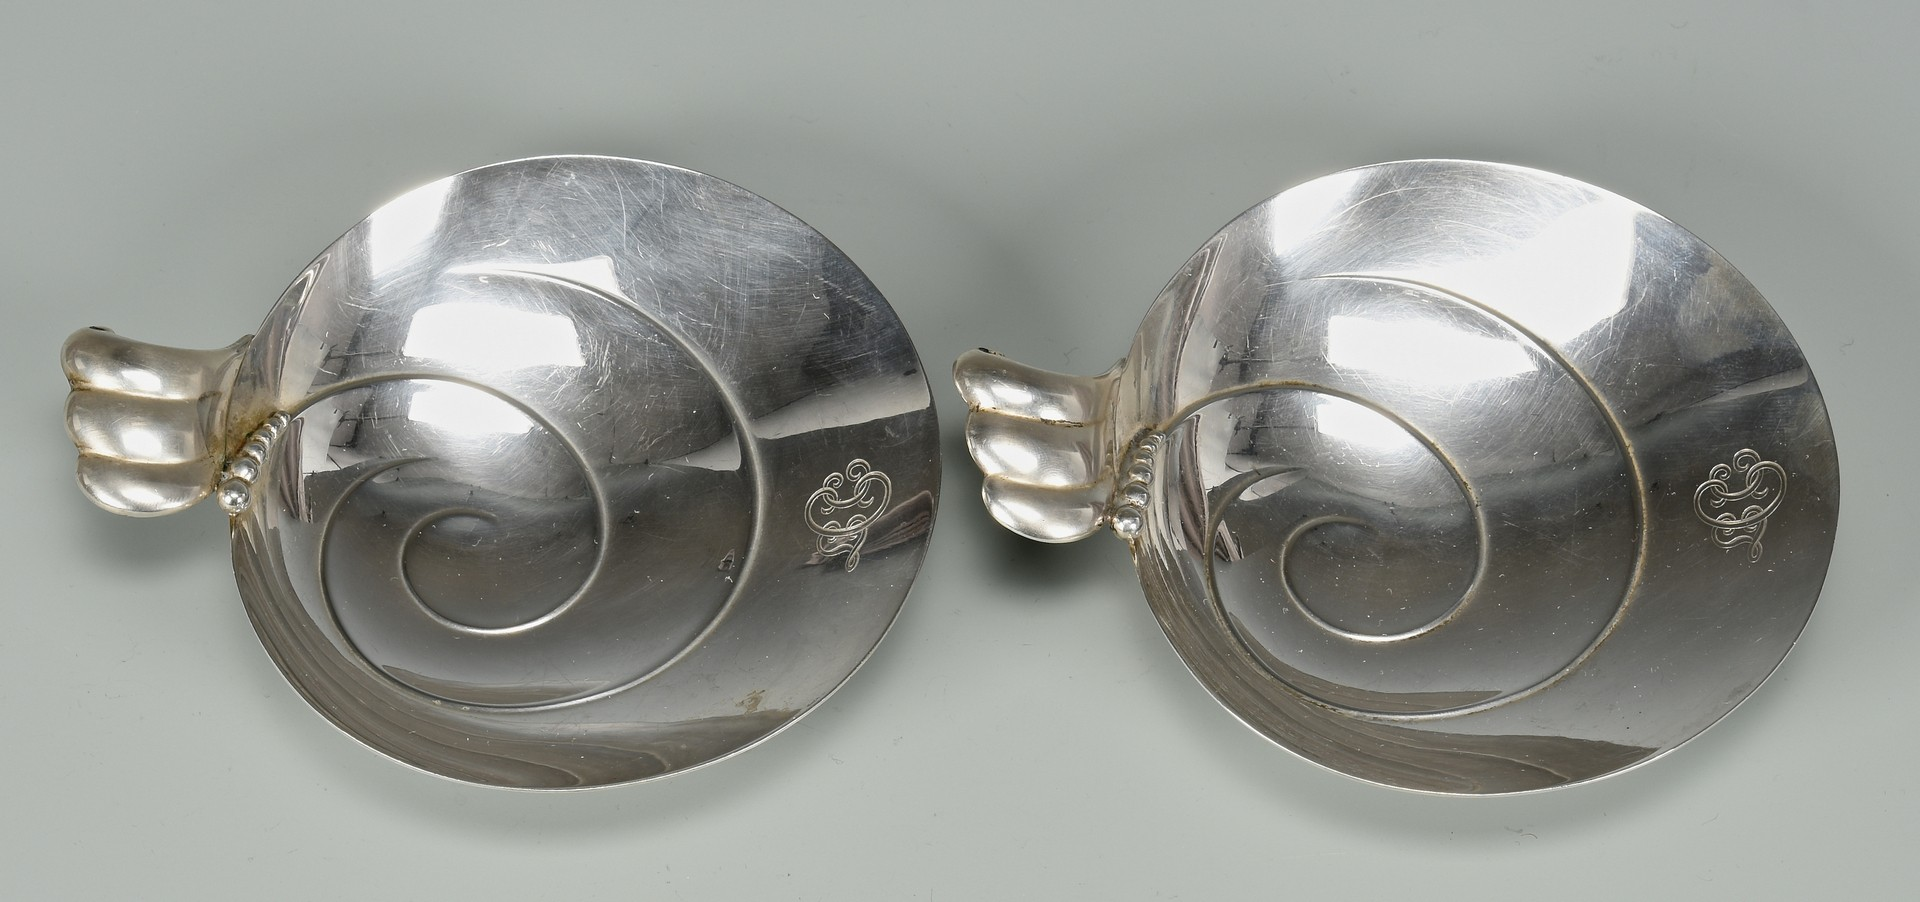 Lot 874: Tiffany Bowls, Plate and flatware, 8 pcs